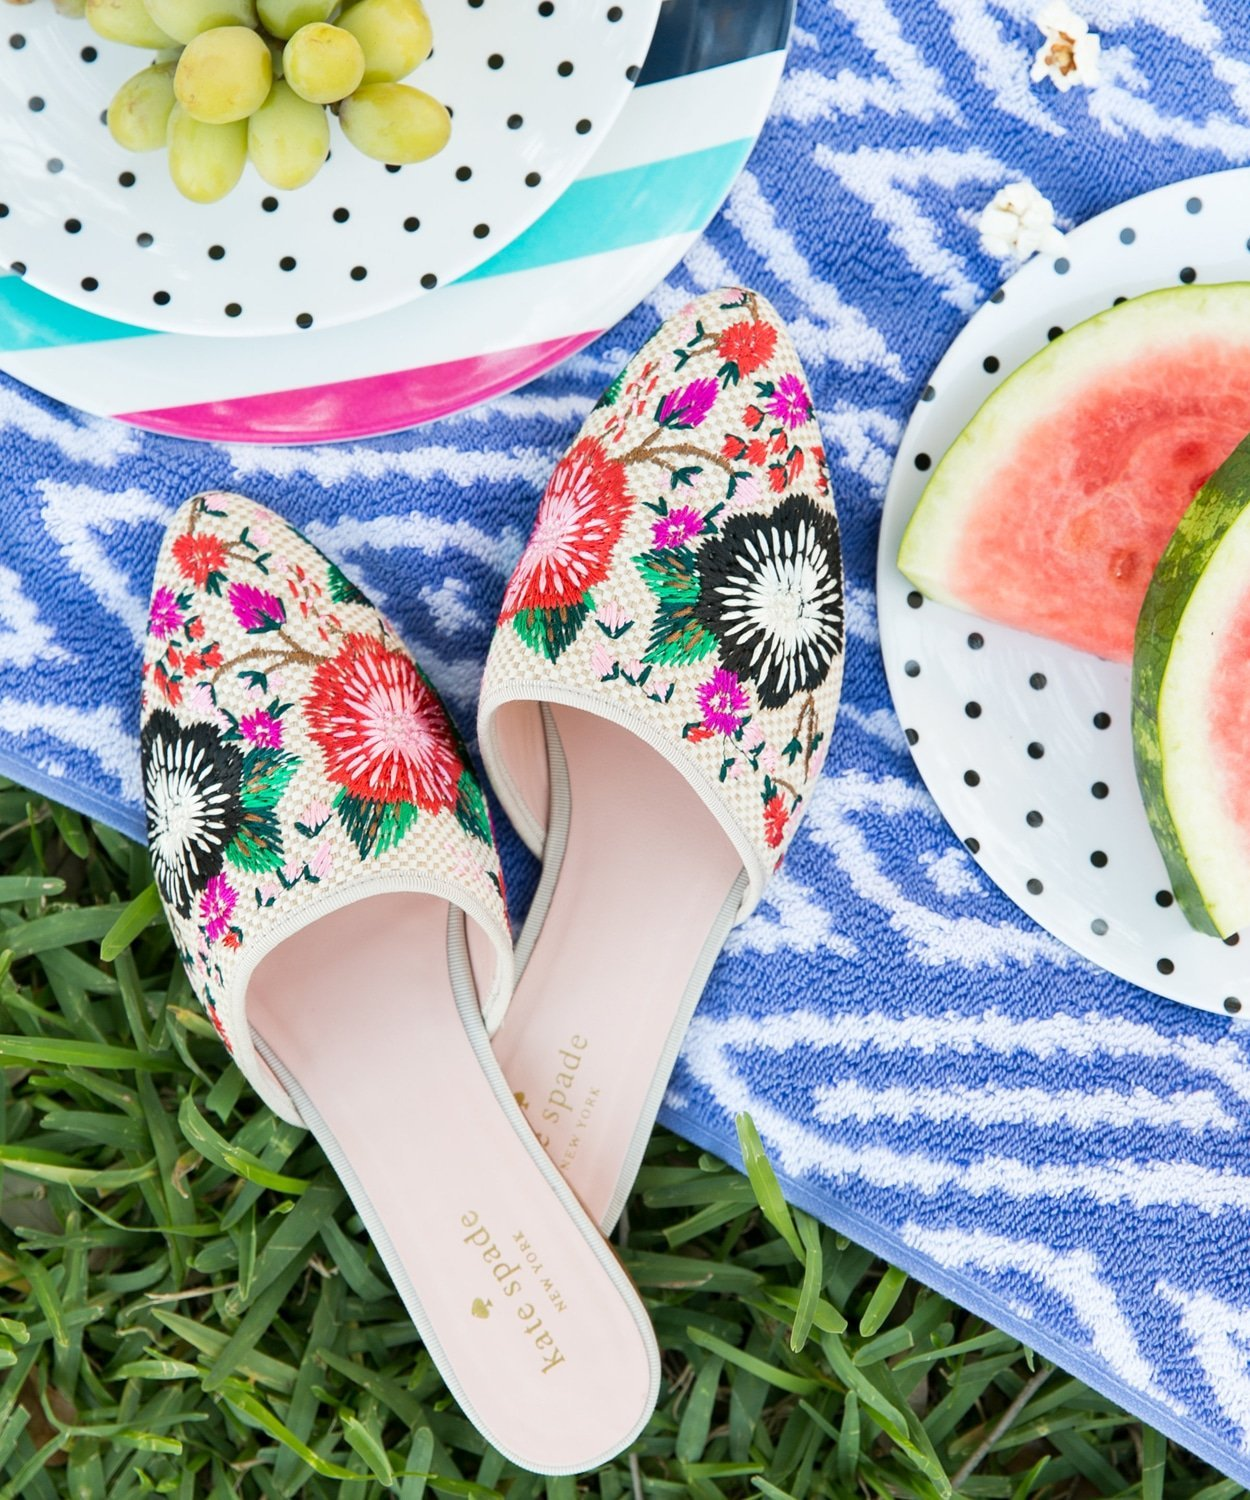 The cutest Kate Spade slides for summer from Bloomingdale's! | www.ashleybrookdesigns.com